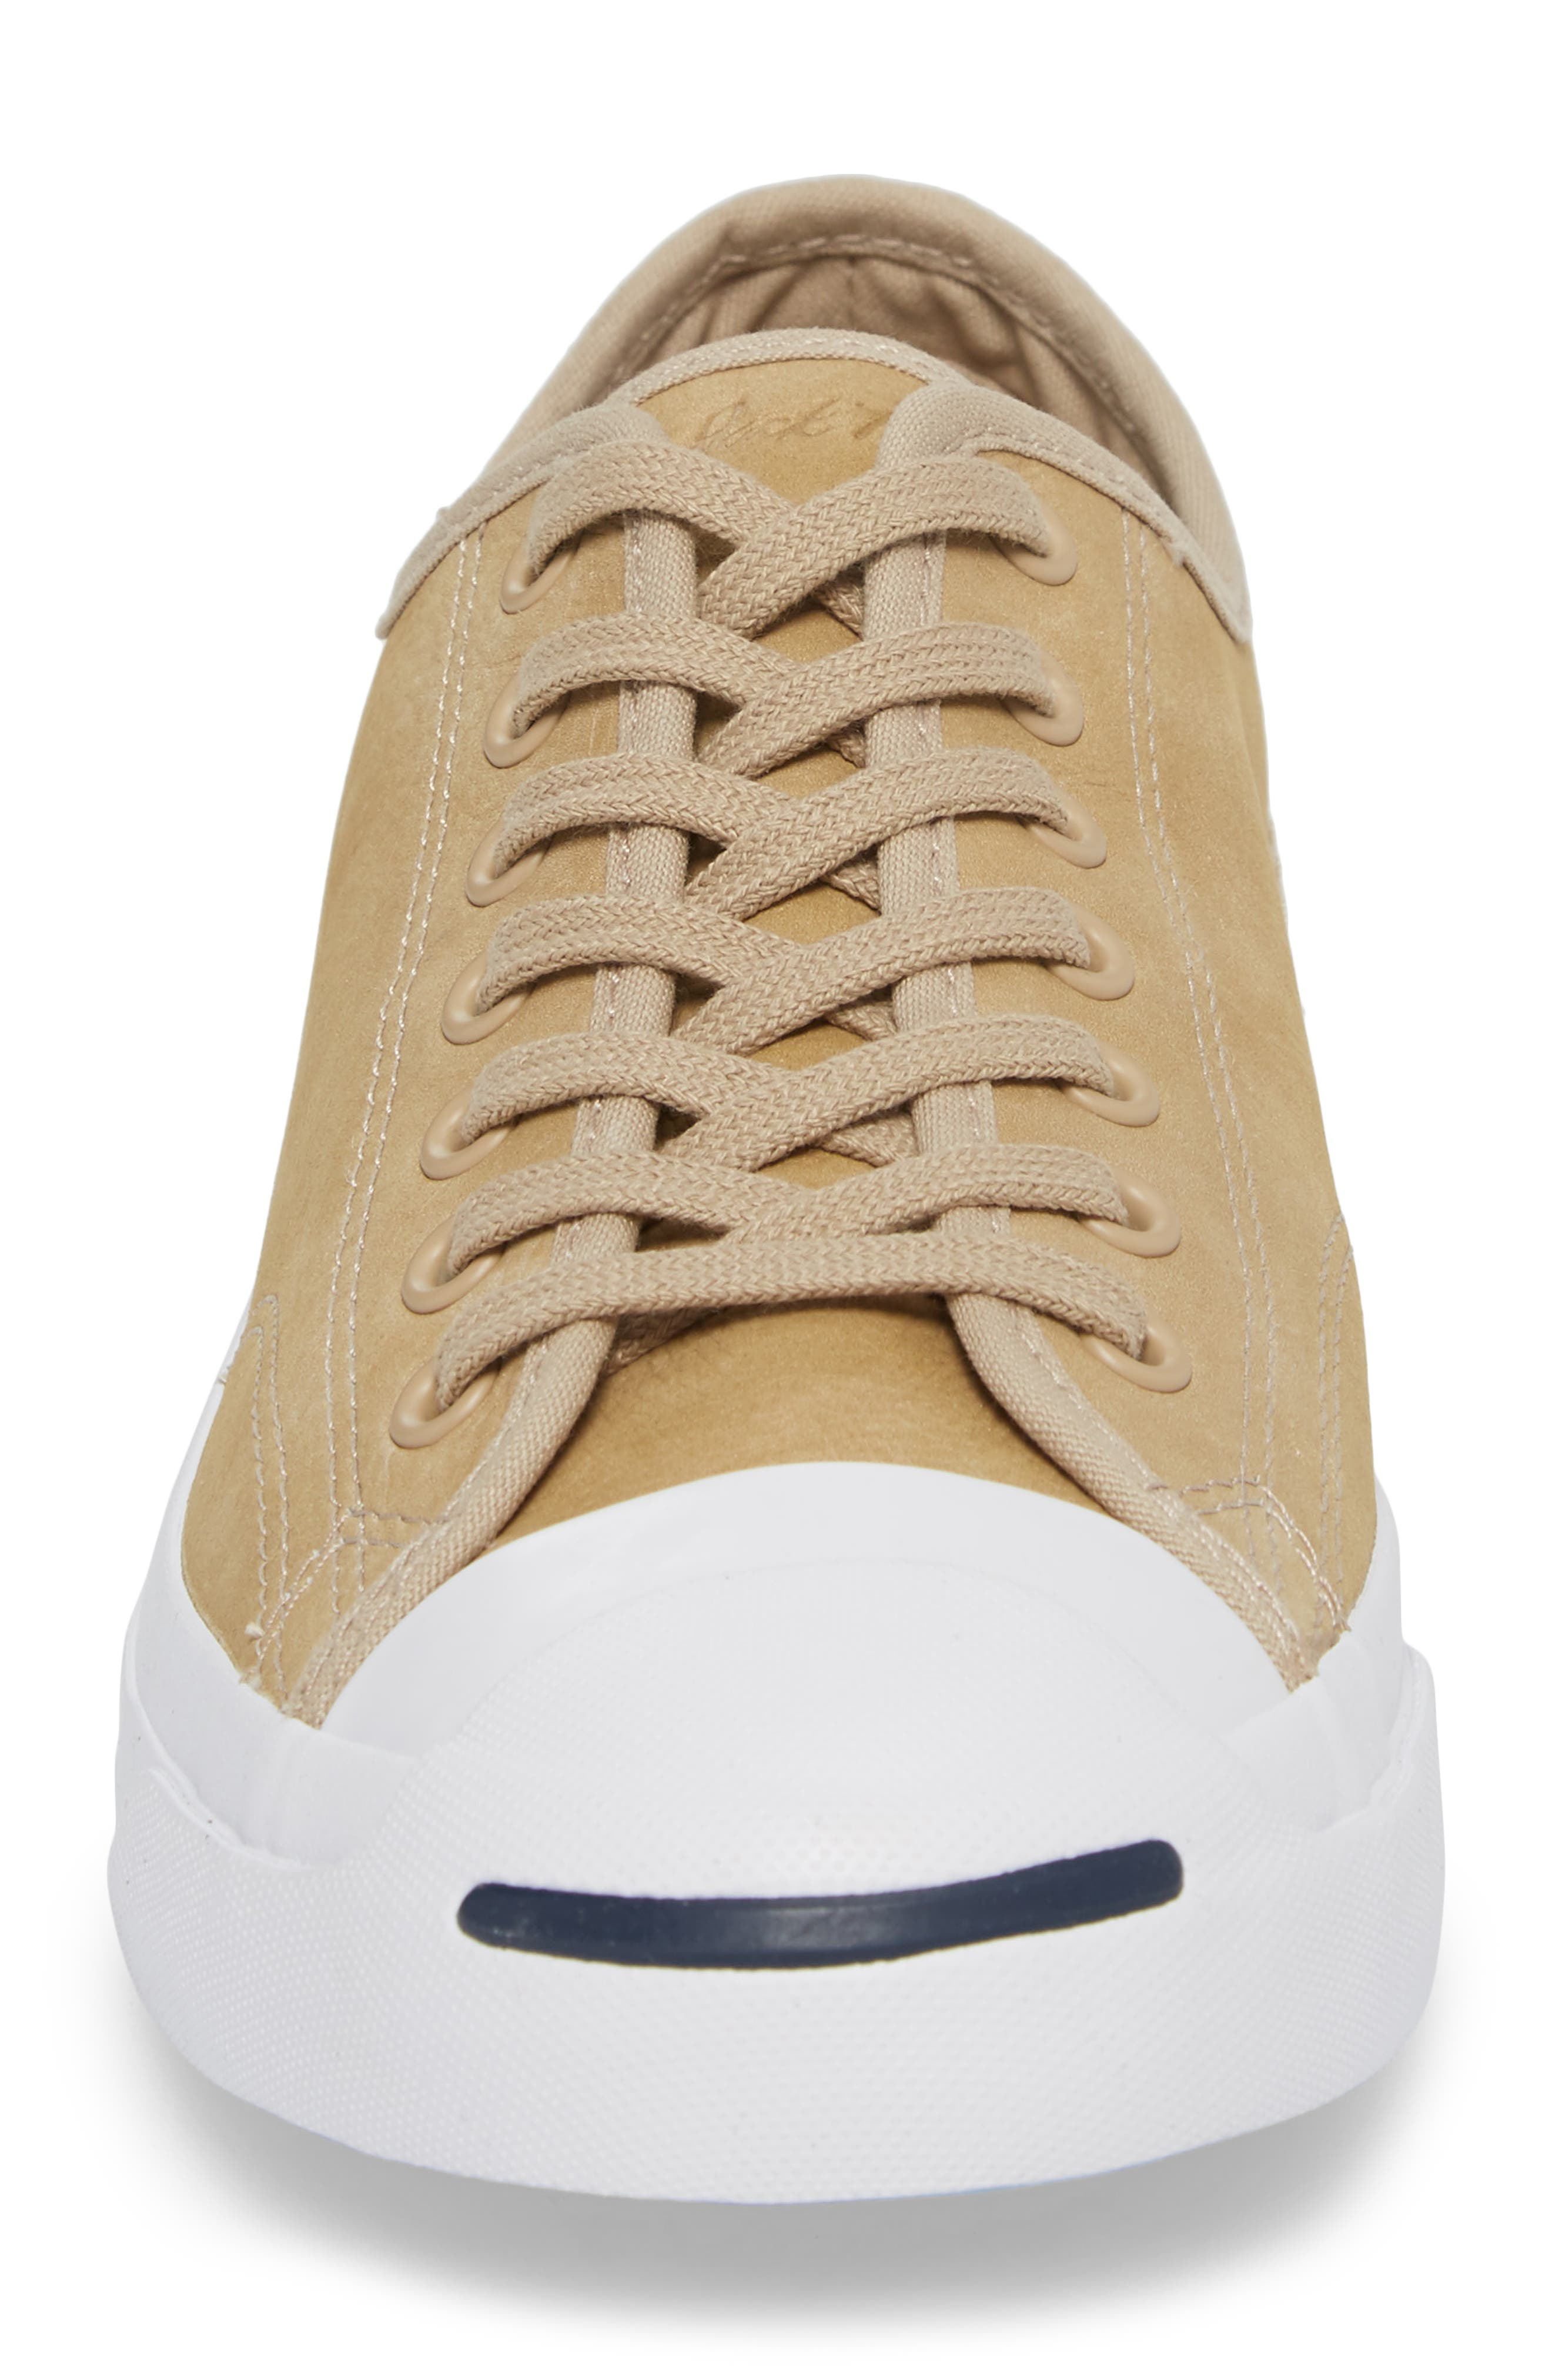 'Jack Purcell - Jack' Sneaker,                             Alternate thumbnail 4, color,                             270